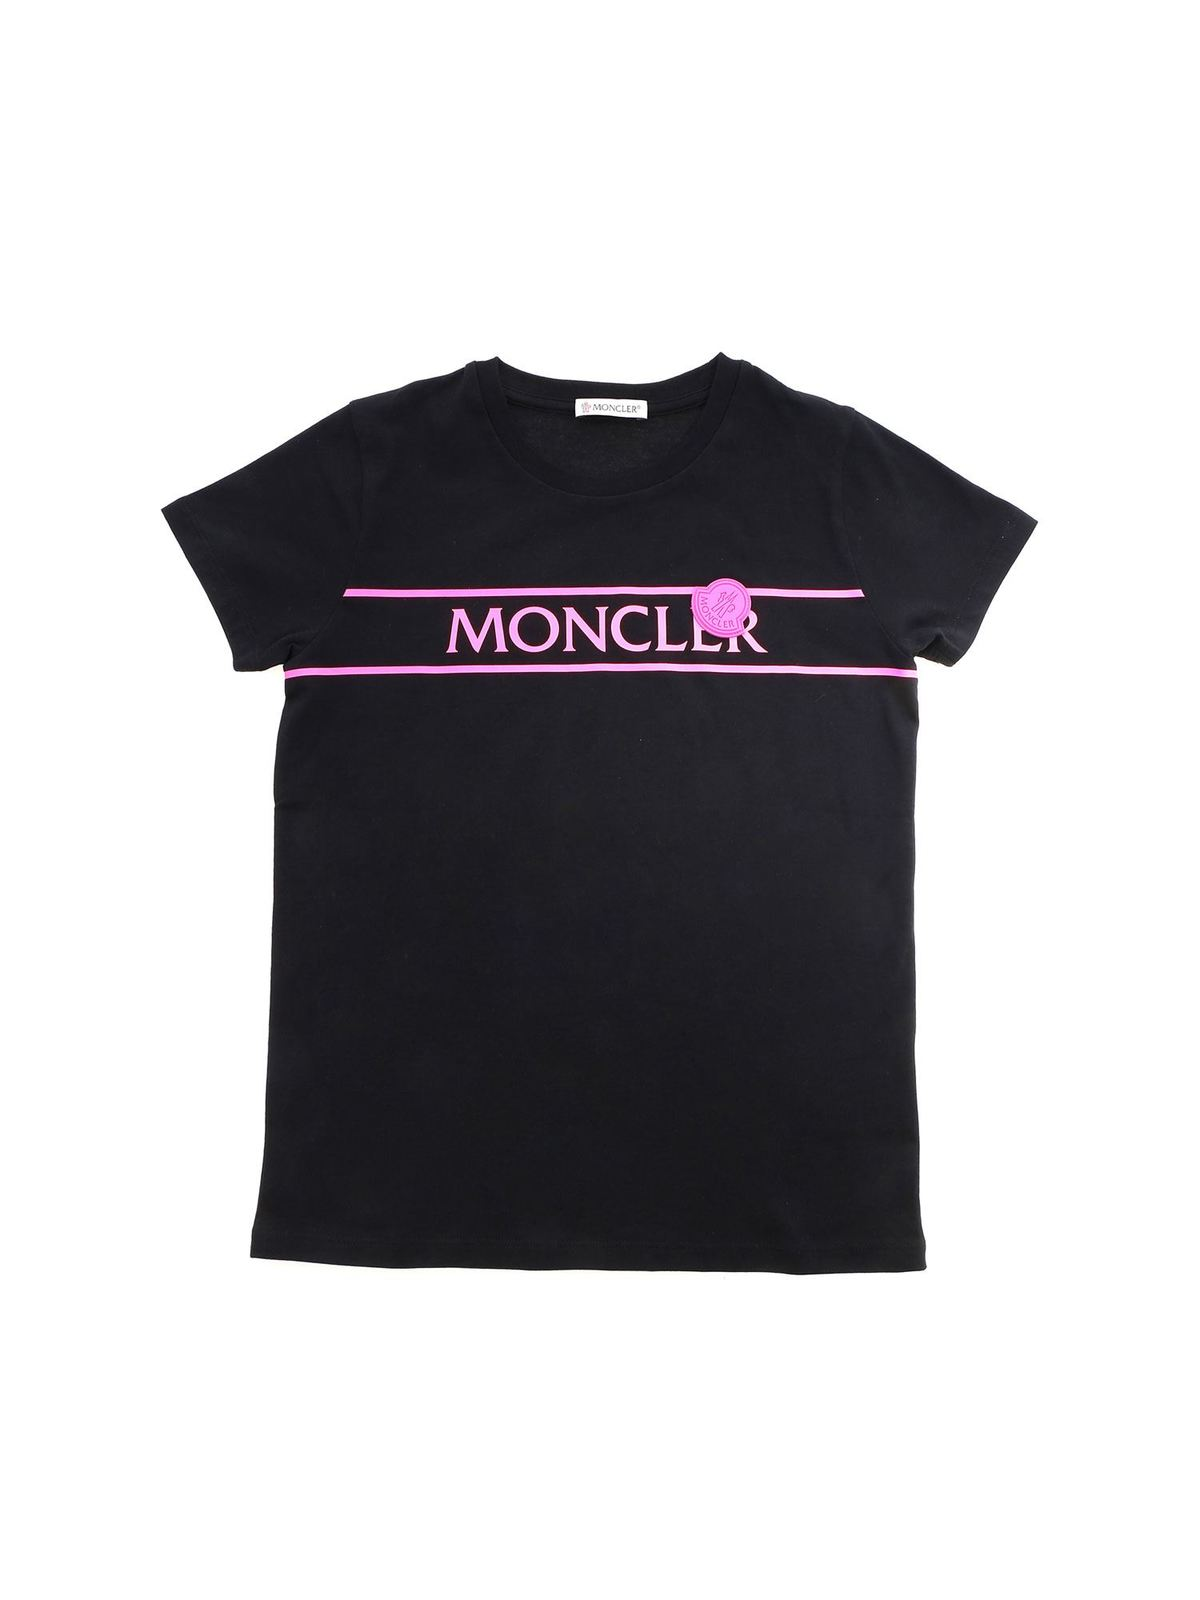 MONCLER JR FLUO LOGO T-SHIRT IN BLACK